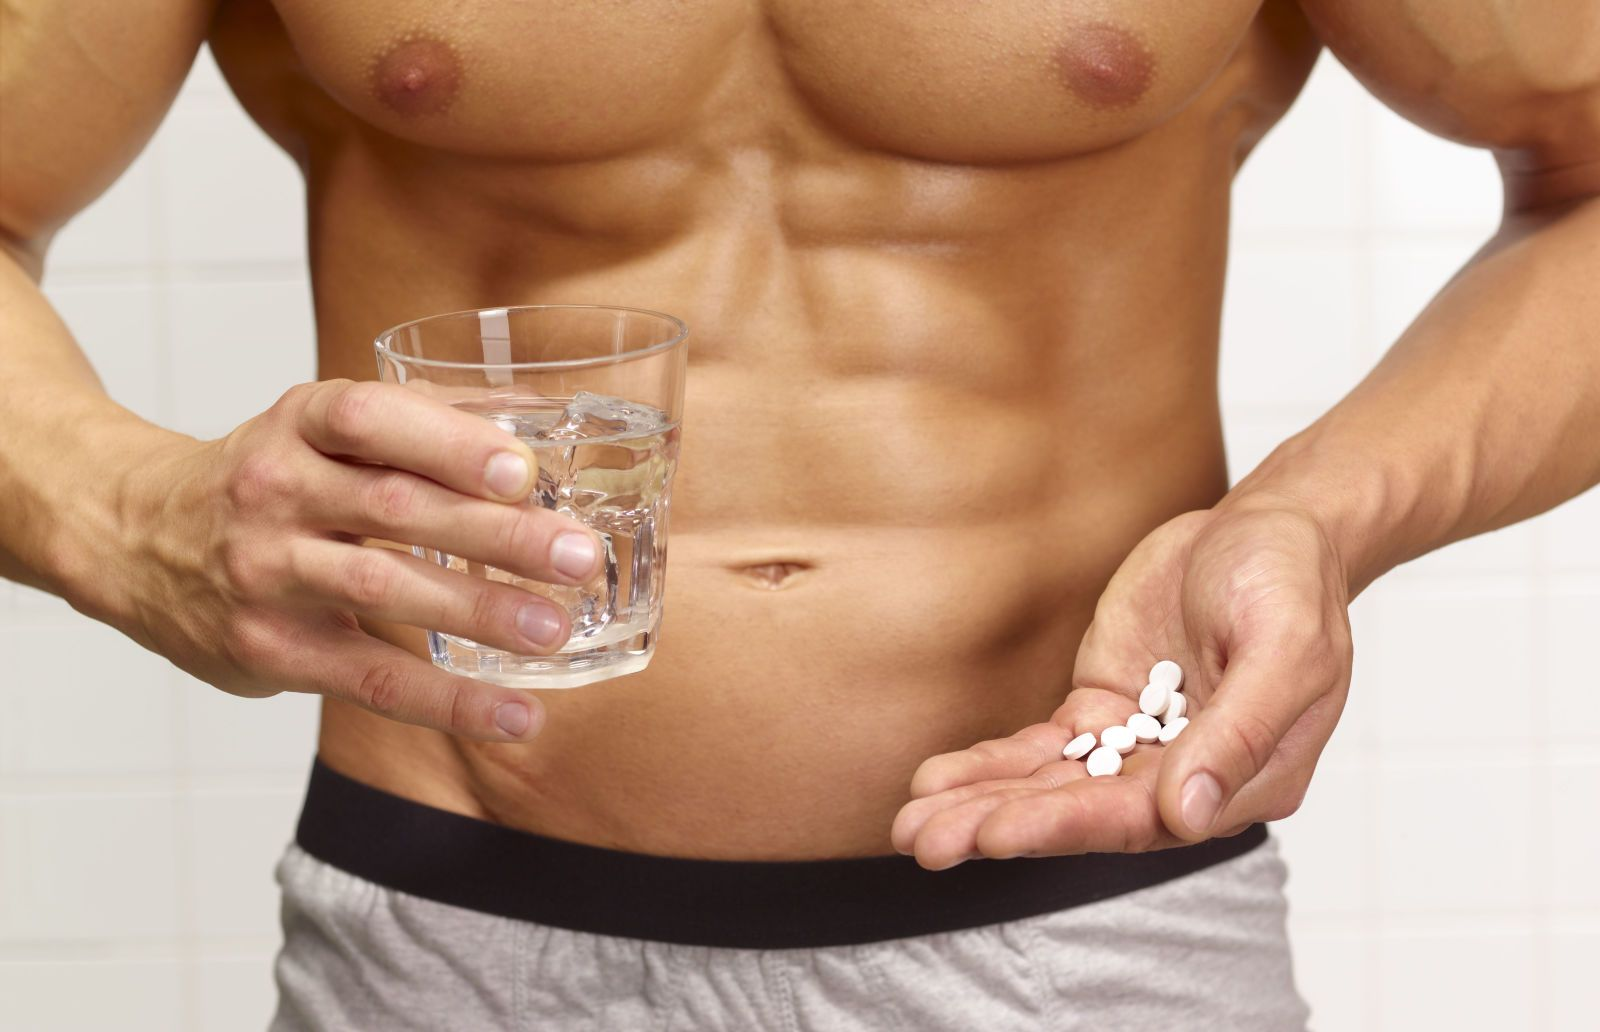 What S Up With The Male Birth Control Pill Birth Control Birth Control Pills Contraceptive Pill